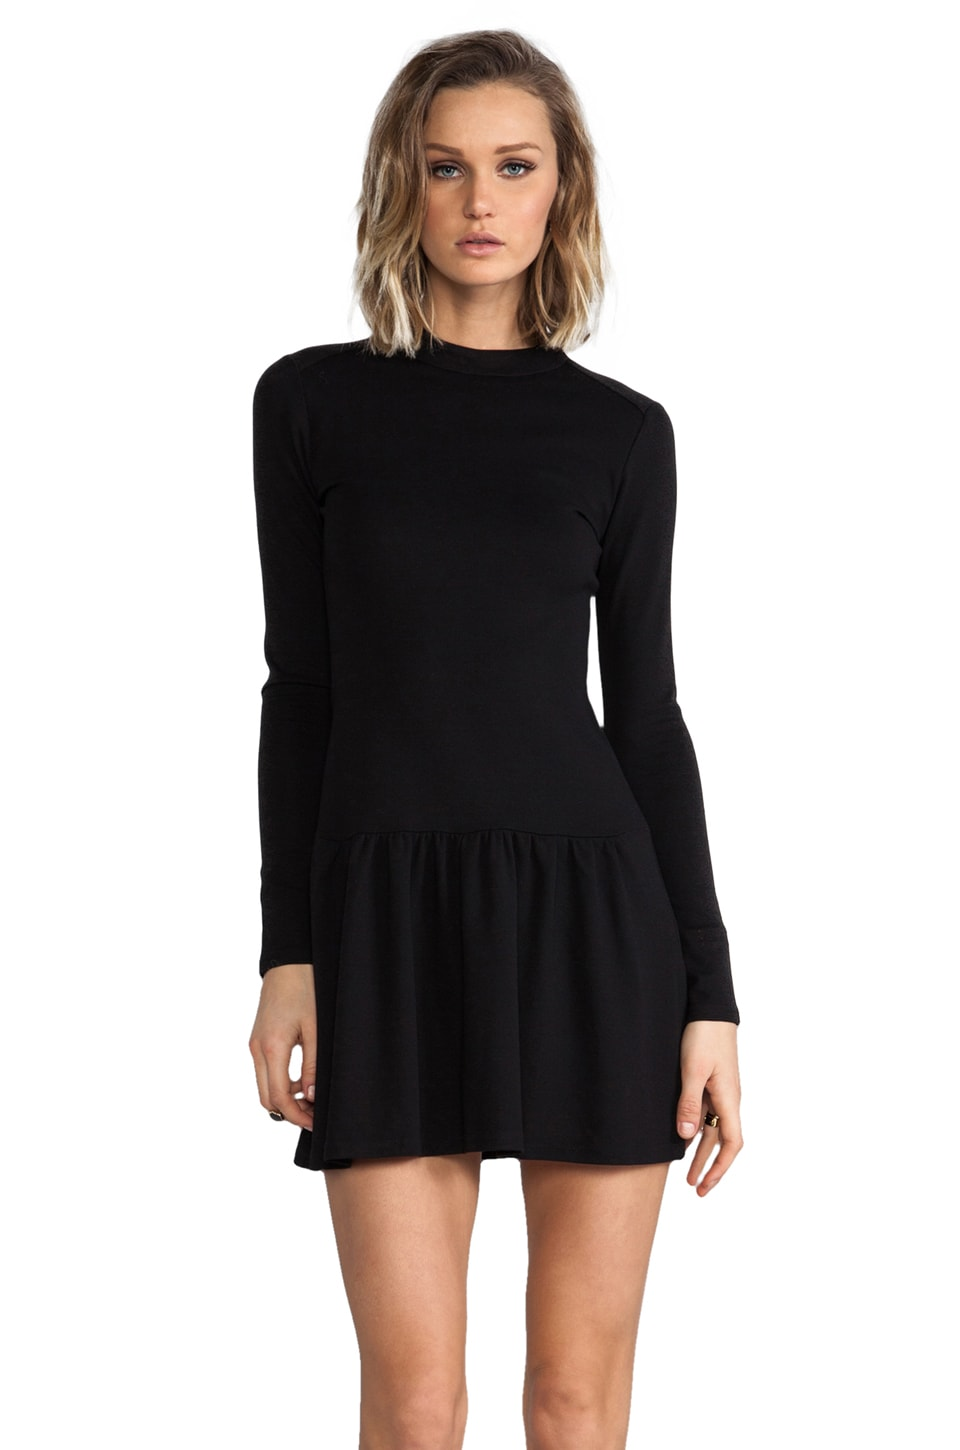 BY ZOE Cala Drop Waist Dress in Black